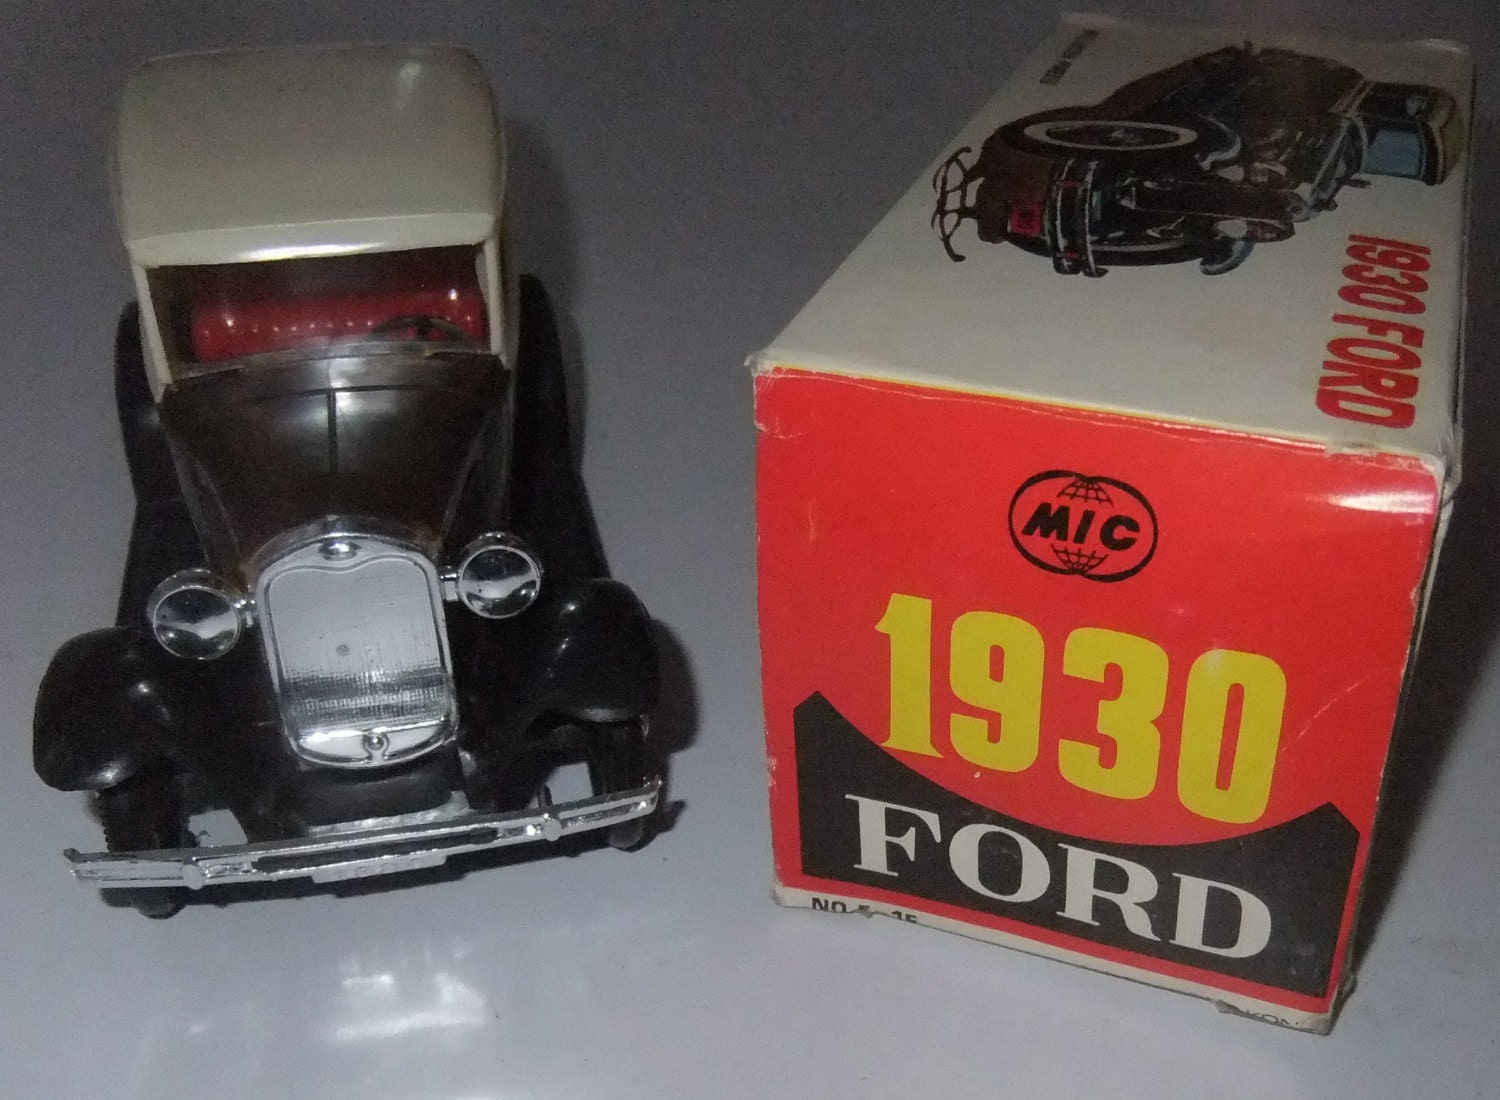 1930 Ford friction powered classic toy car by MIC boxed made in Hong Kong